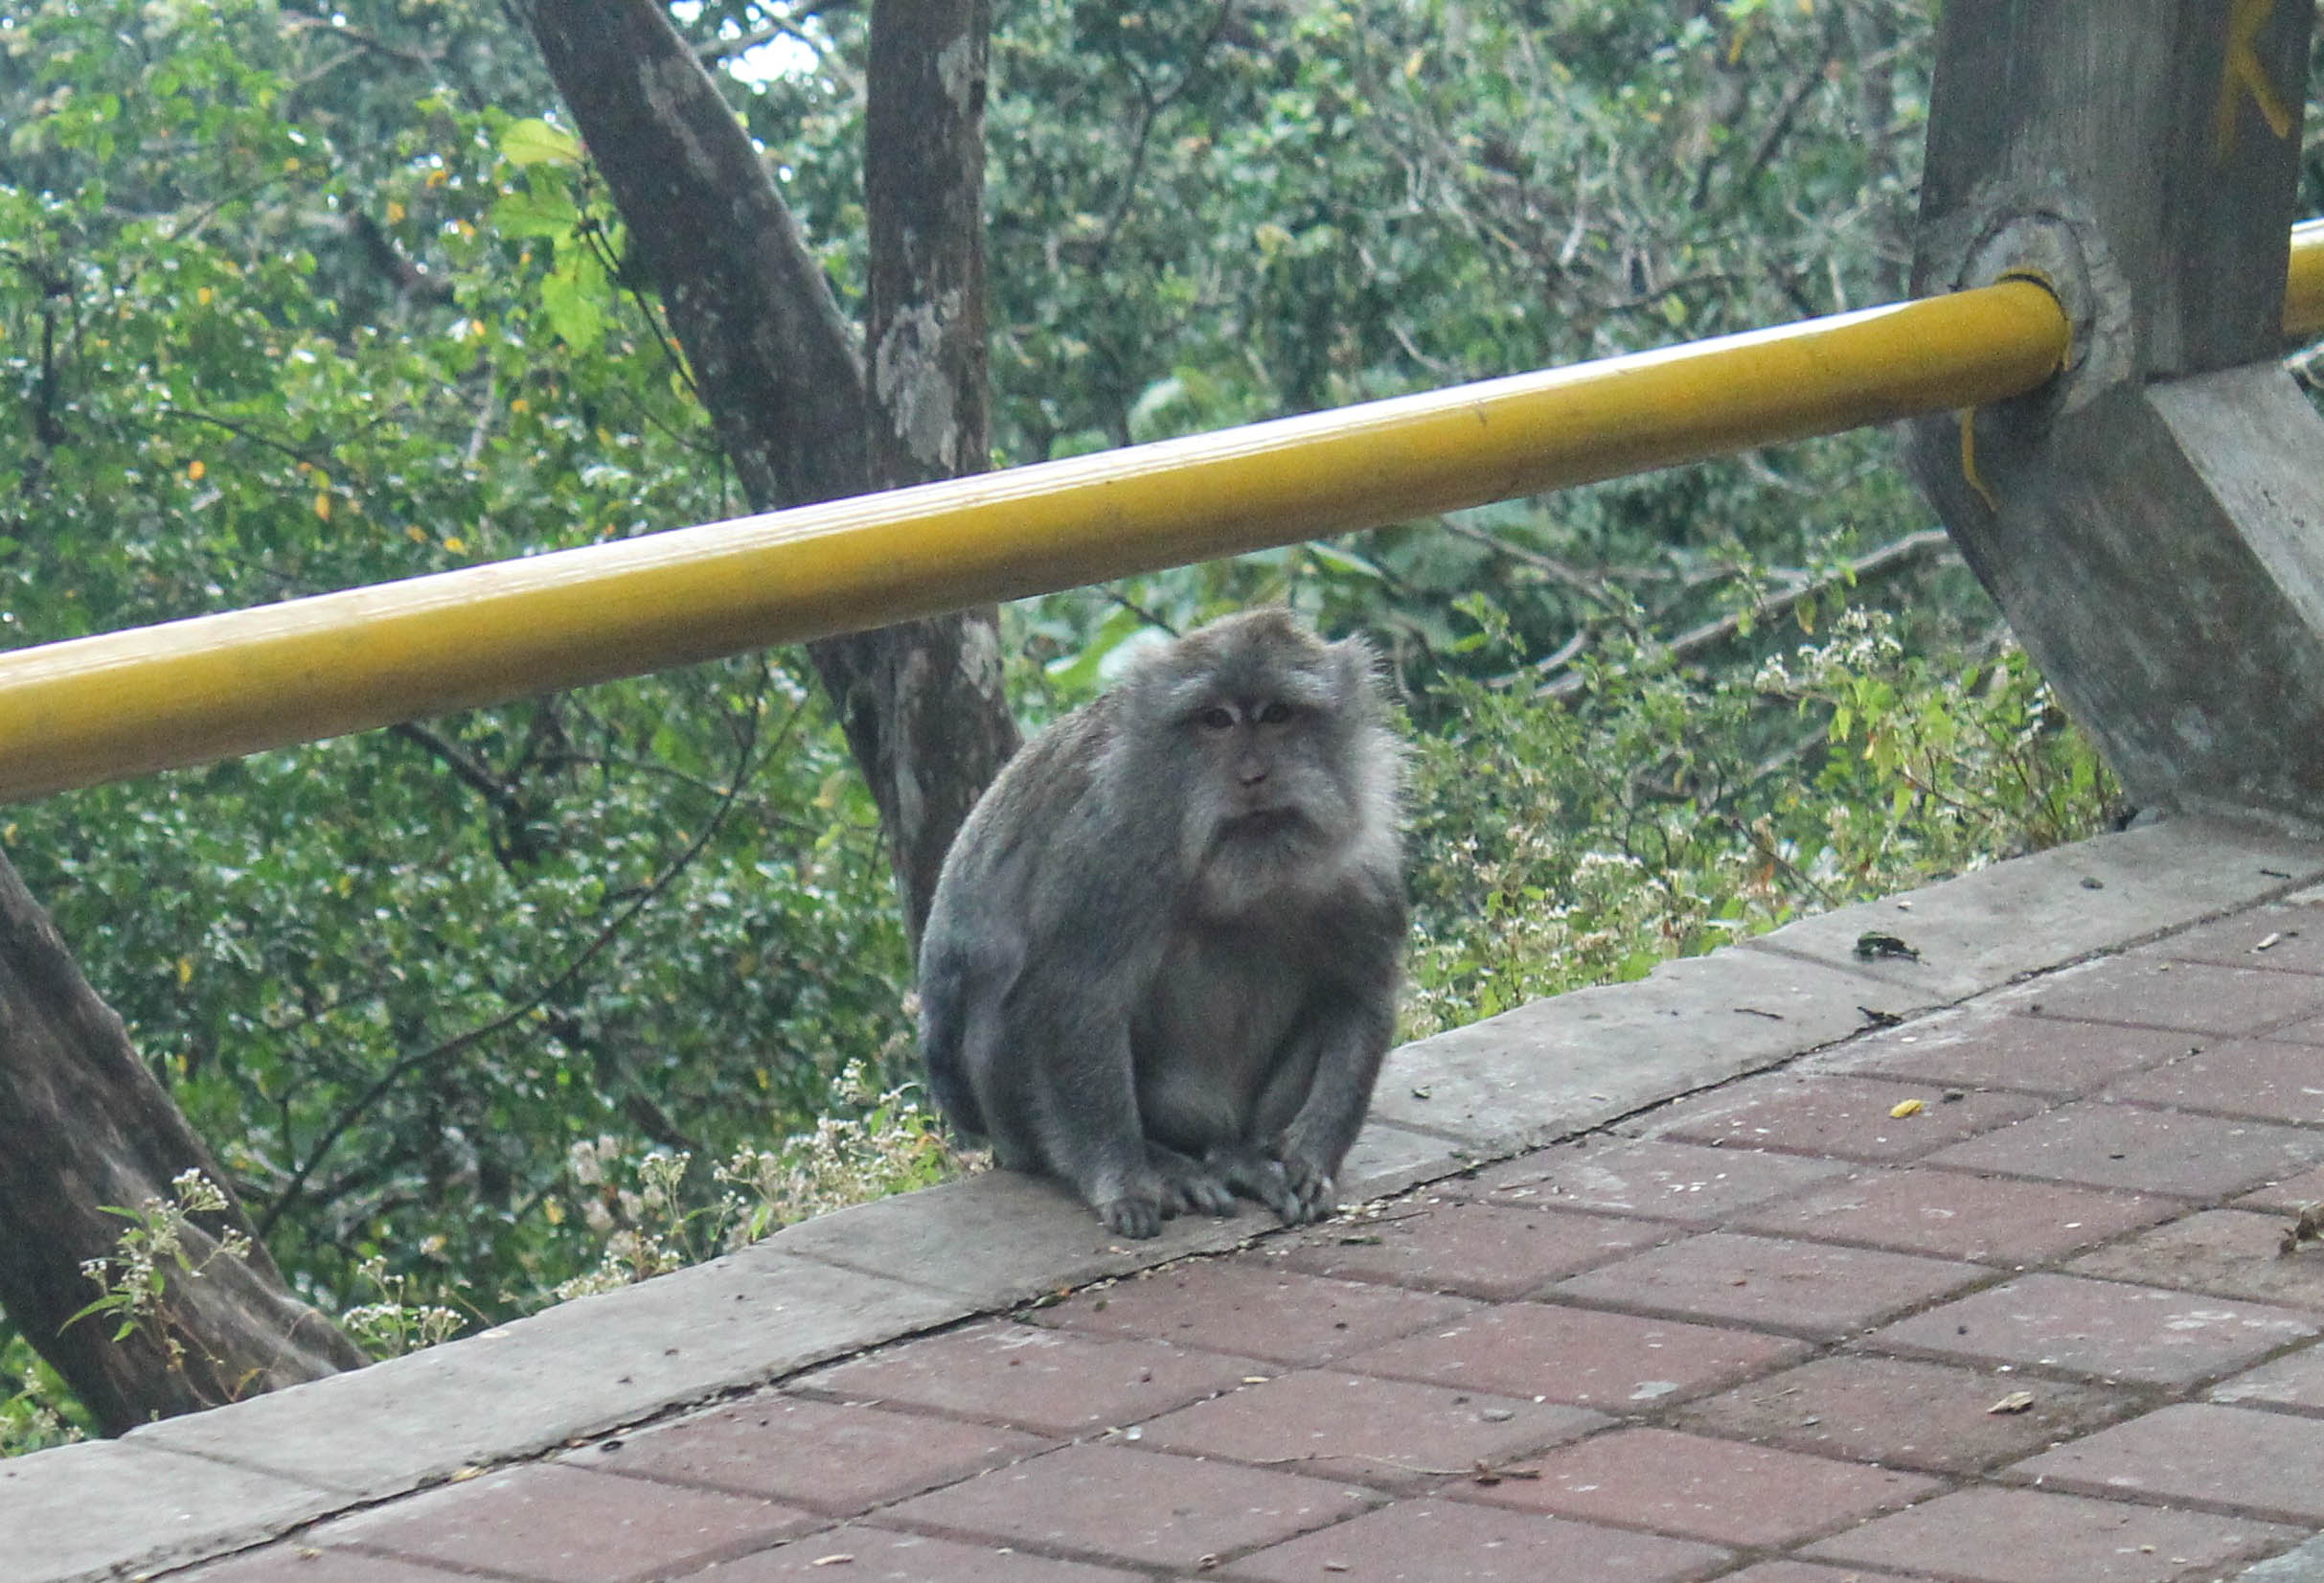 Road side monkeys. The one on the left looks like a cute old man while the one on the right is less adorable: showing it's teeth,showing me who's boss.